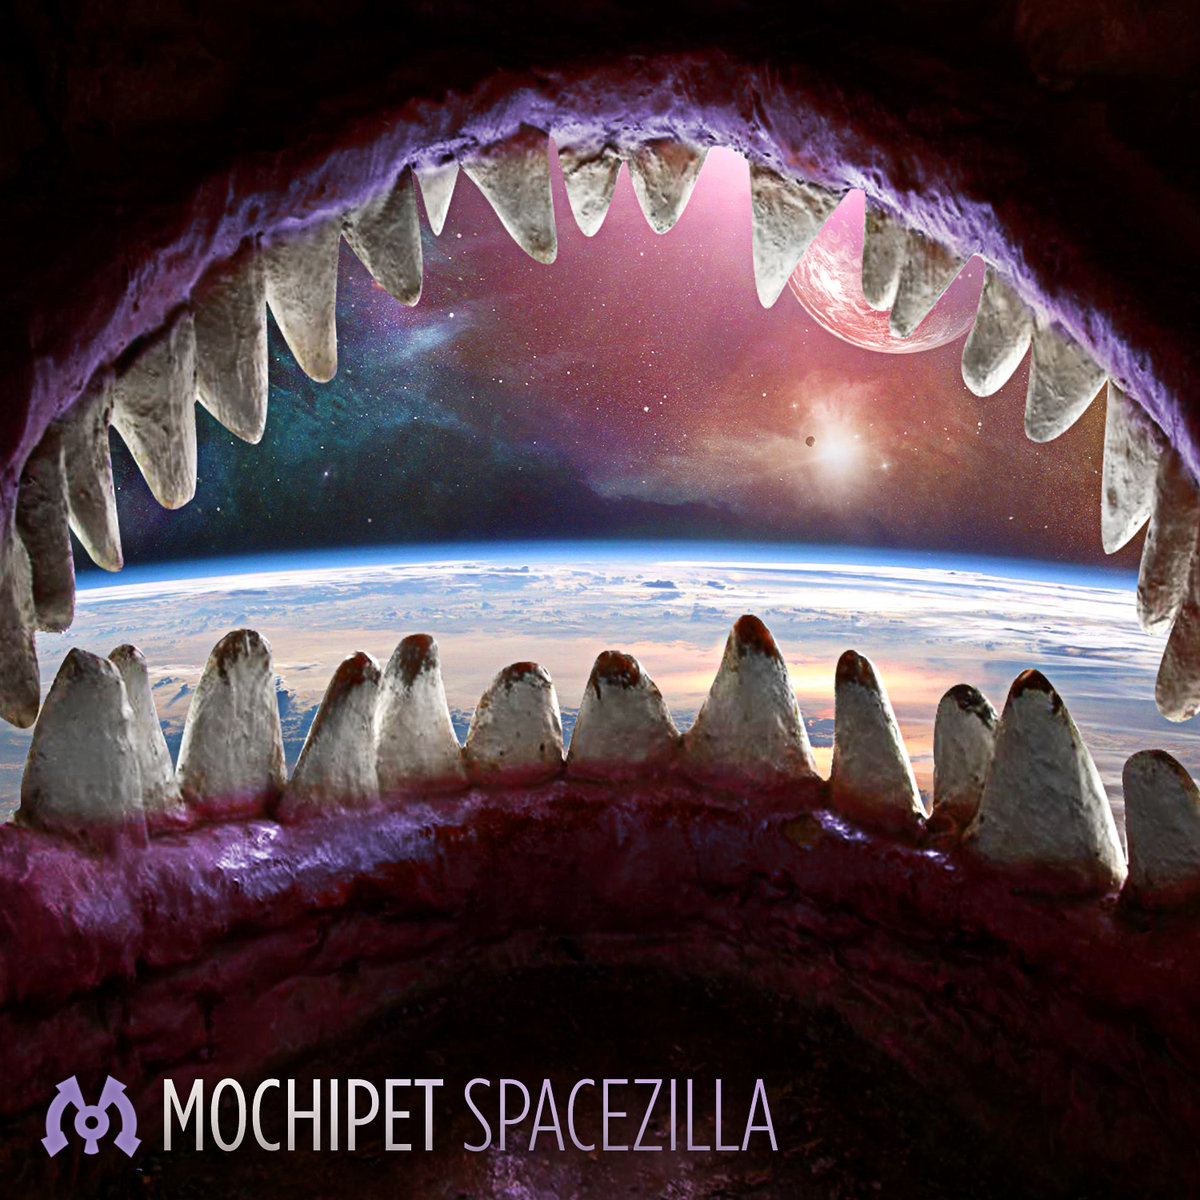 Mochipet - For When the World Ends (Udachi Remix) @ 'Spacezilla' album (electronic, dubstep)